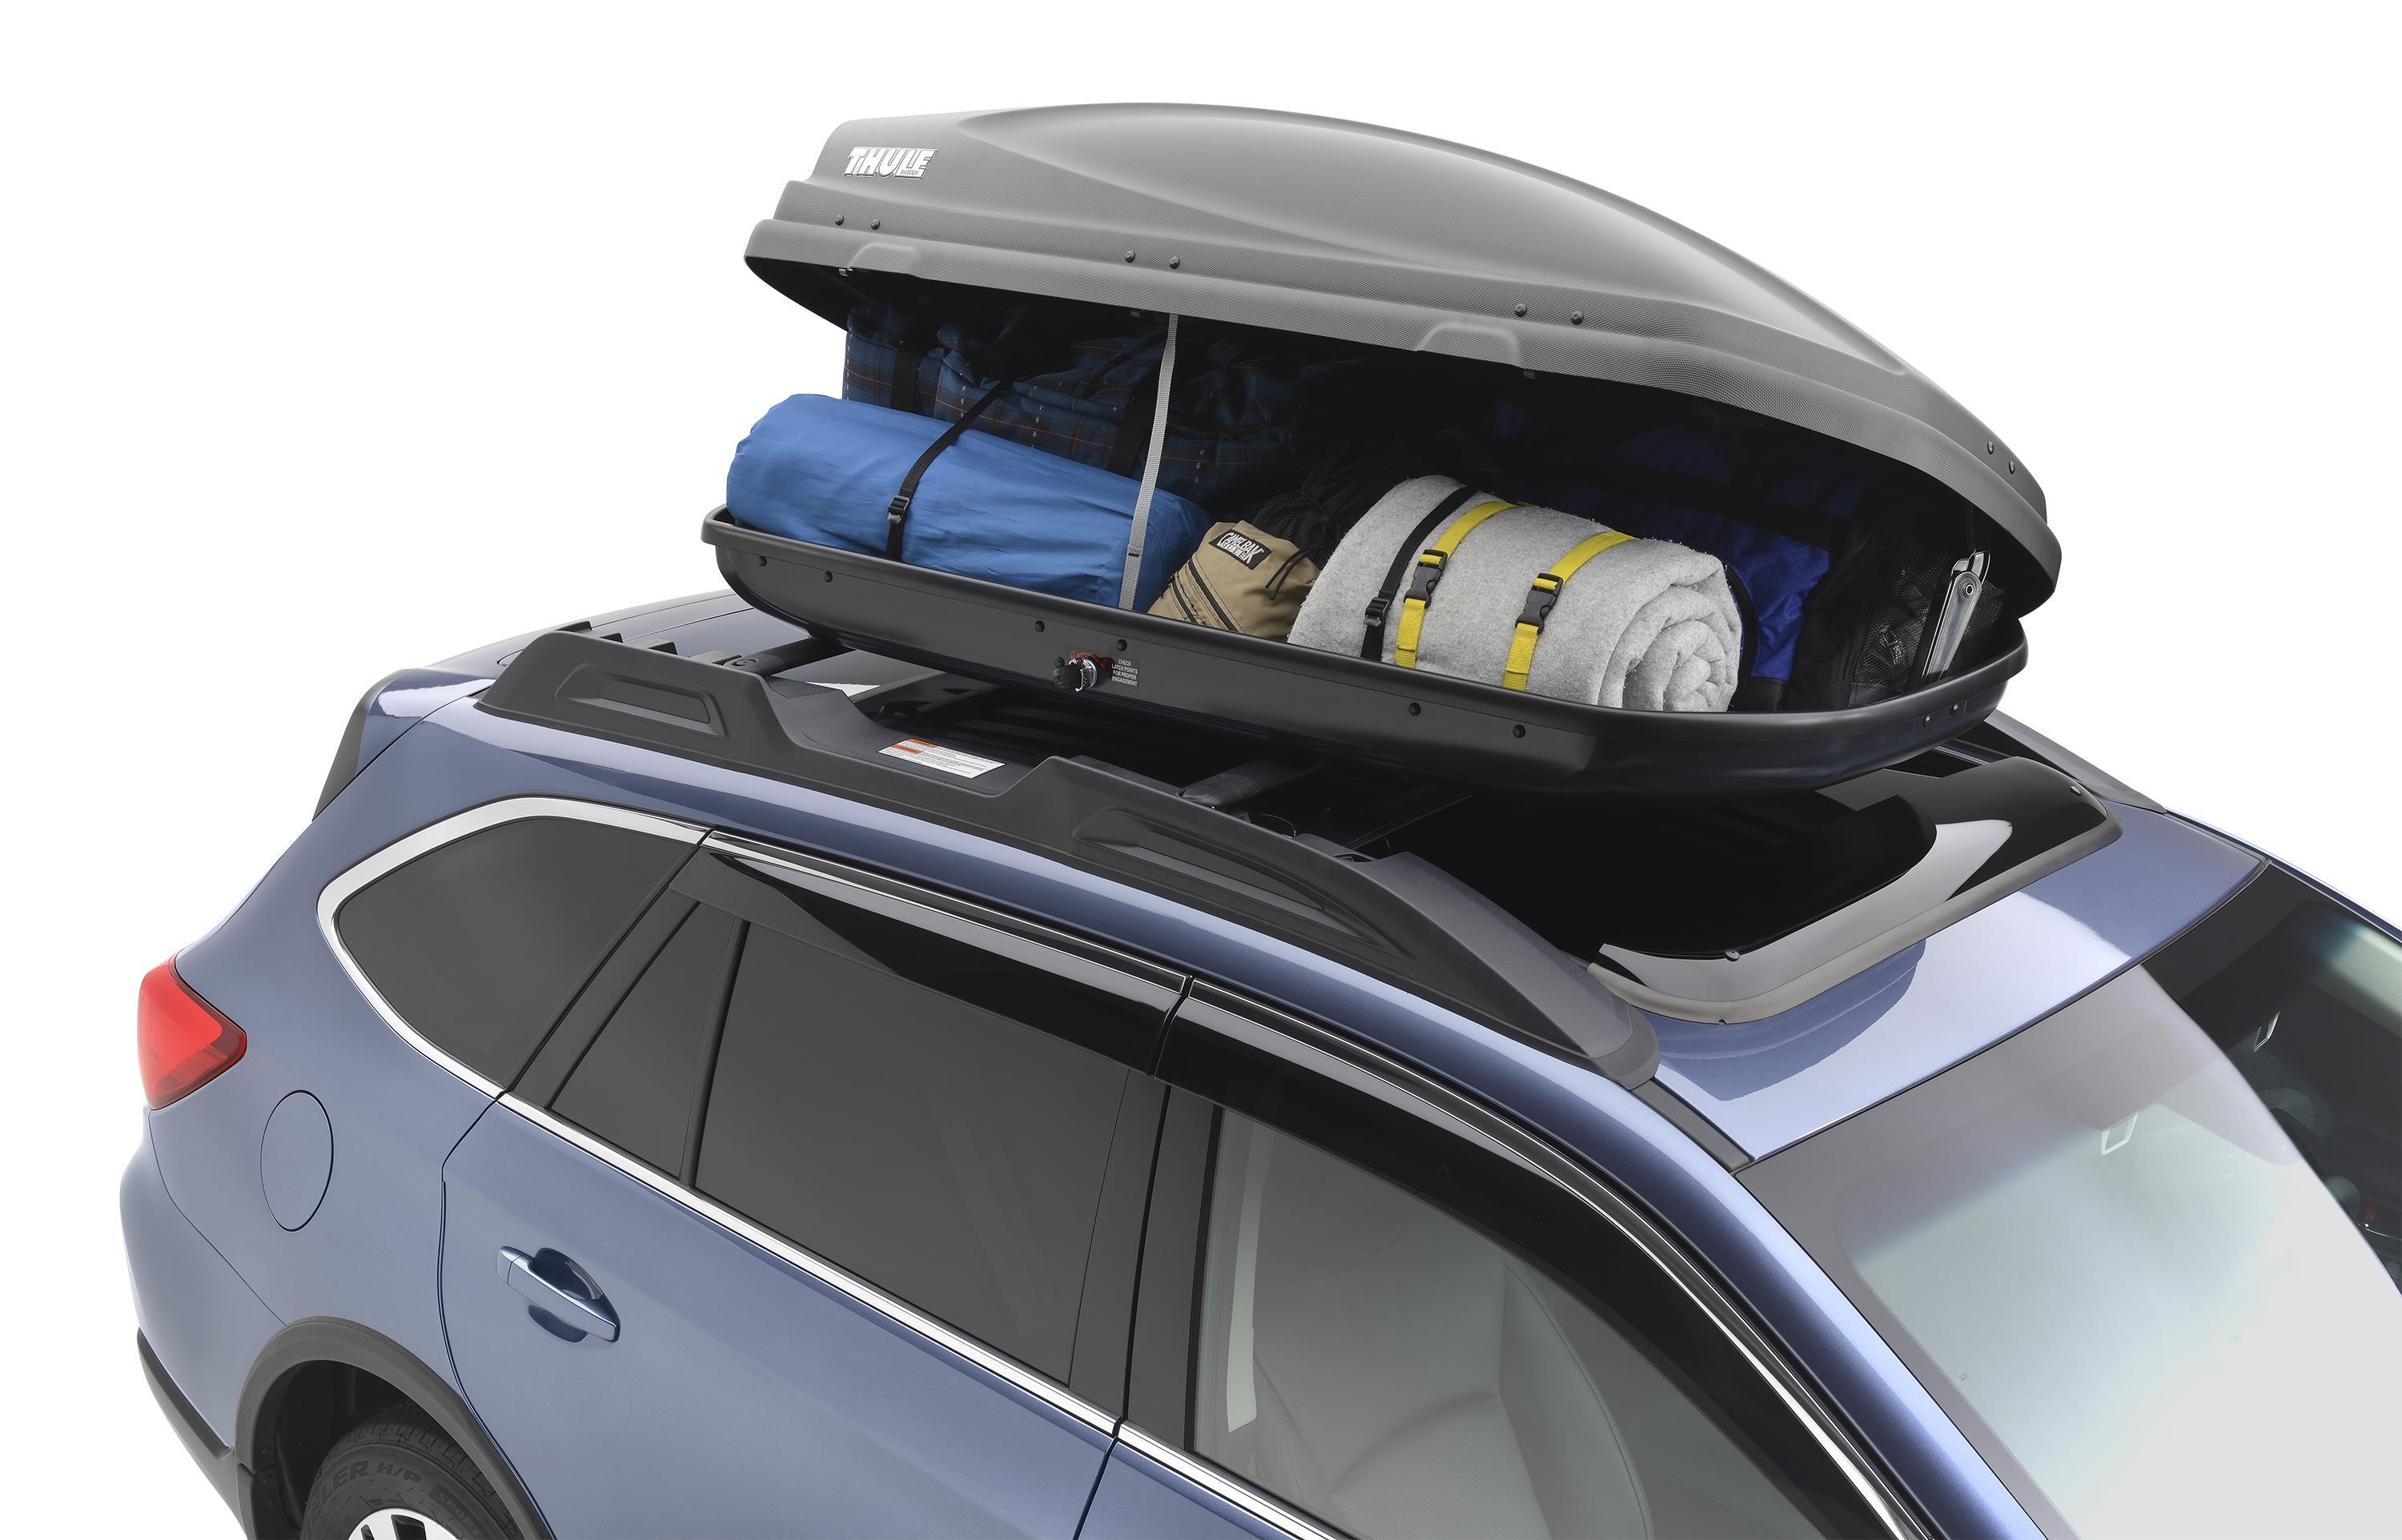 Thule Roof Cargo Carrier 13 Cubic feet of lockable storage